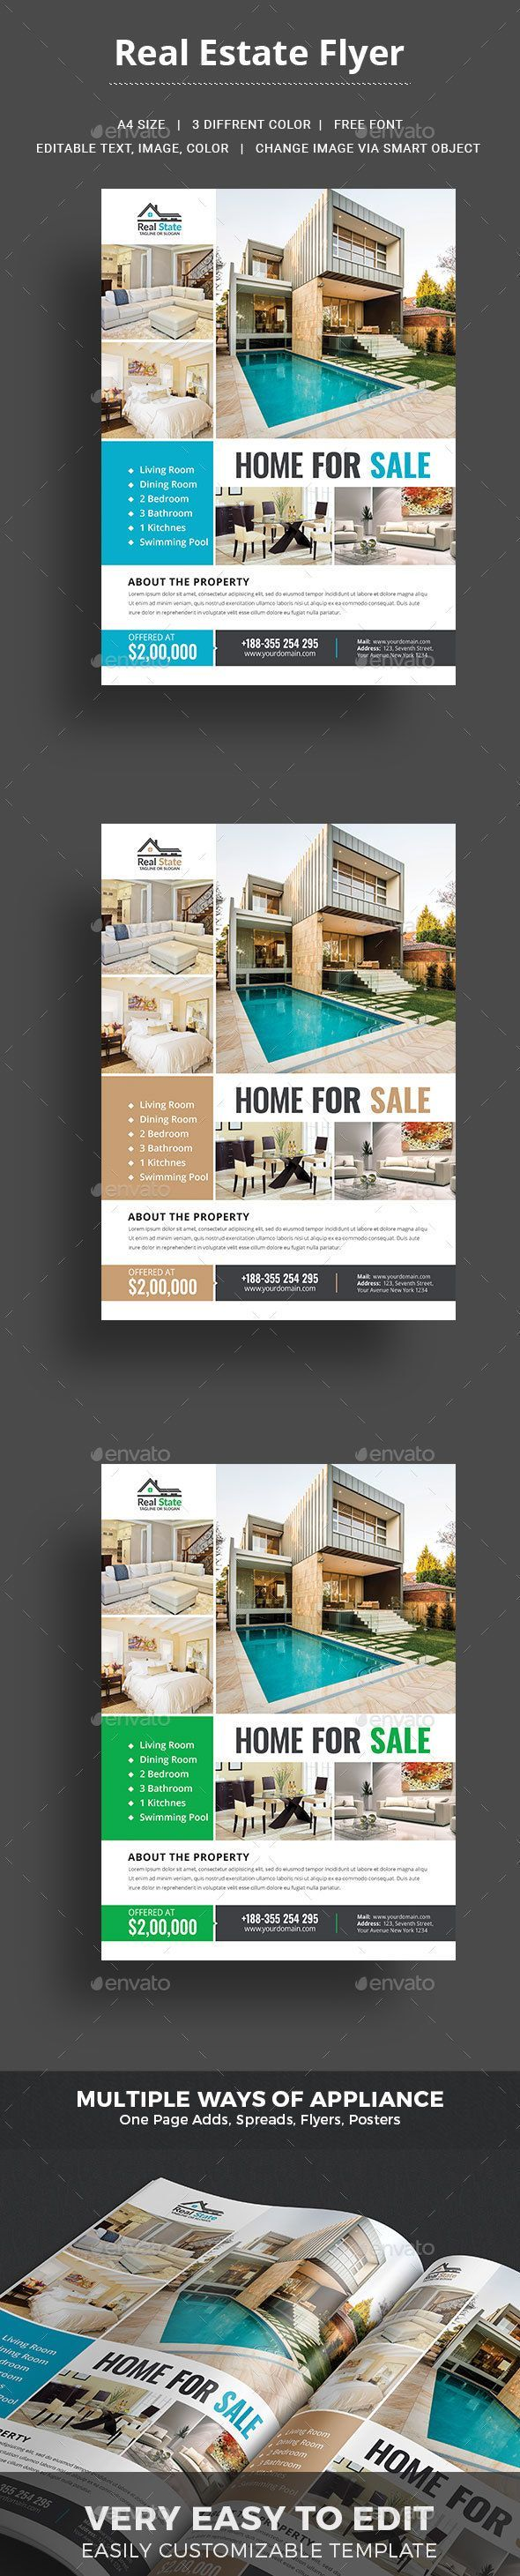 Real Estate Template%0A  Real Estate Flyer Template   Commerce Flyers Download here  https